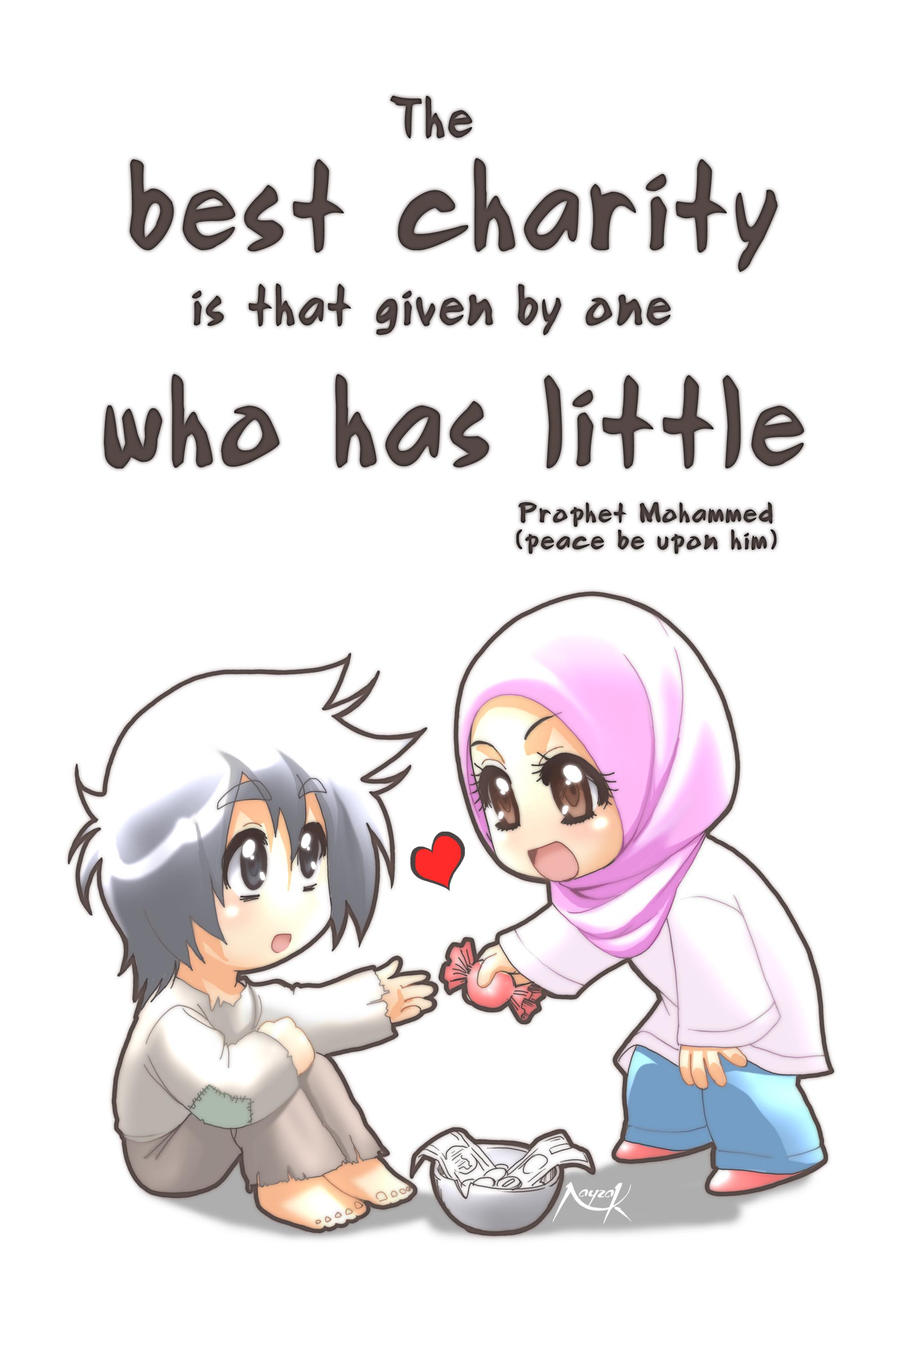 The Best Charity... by Nayzak